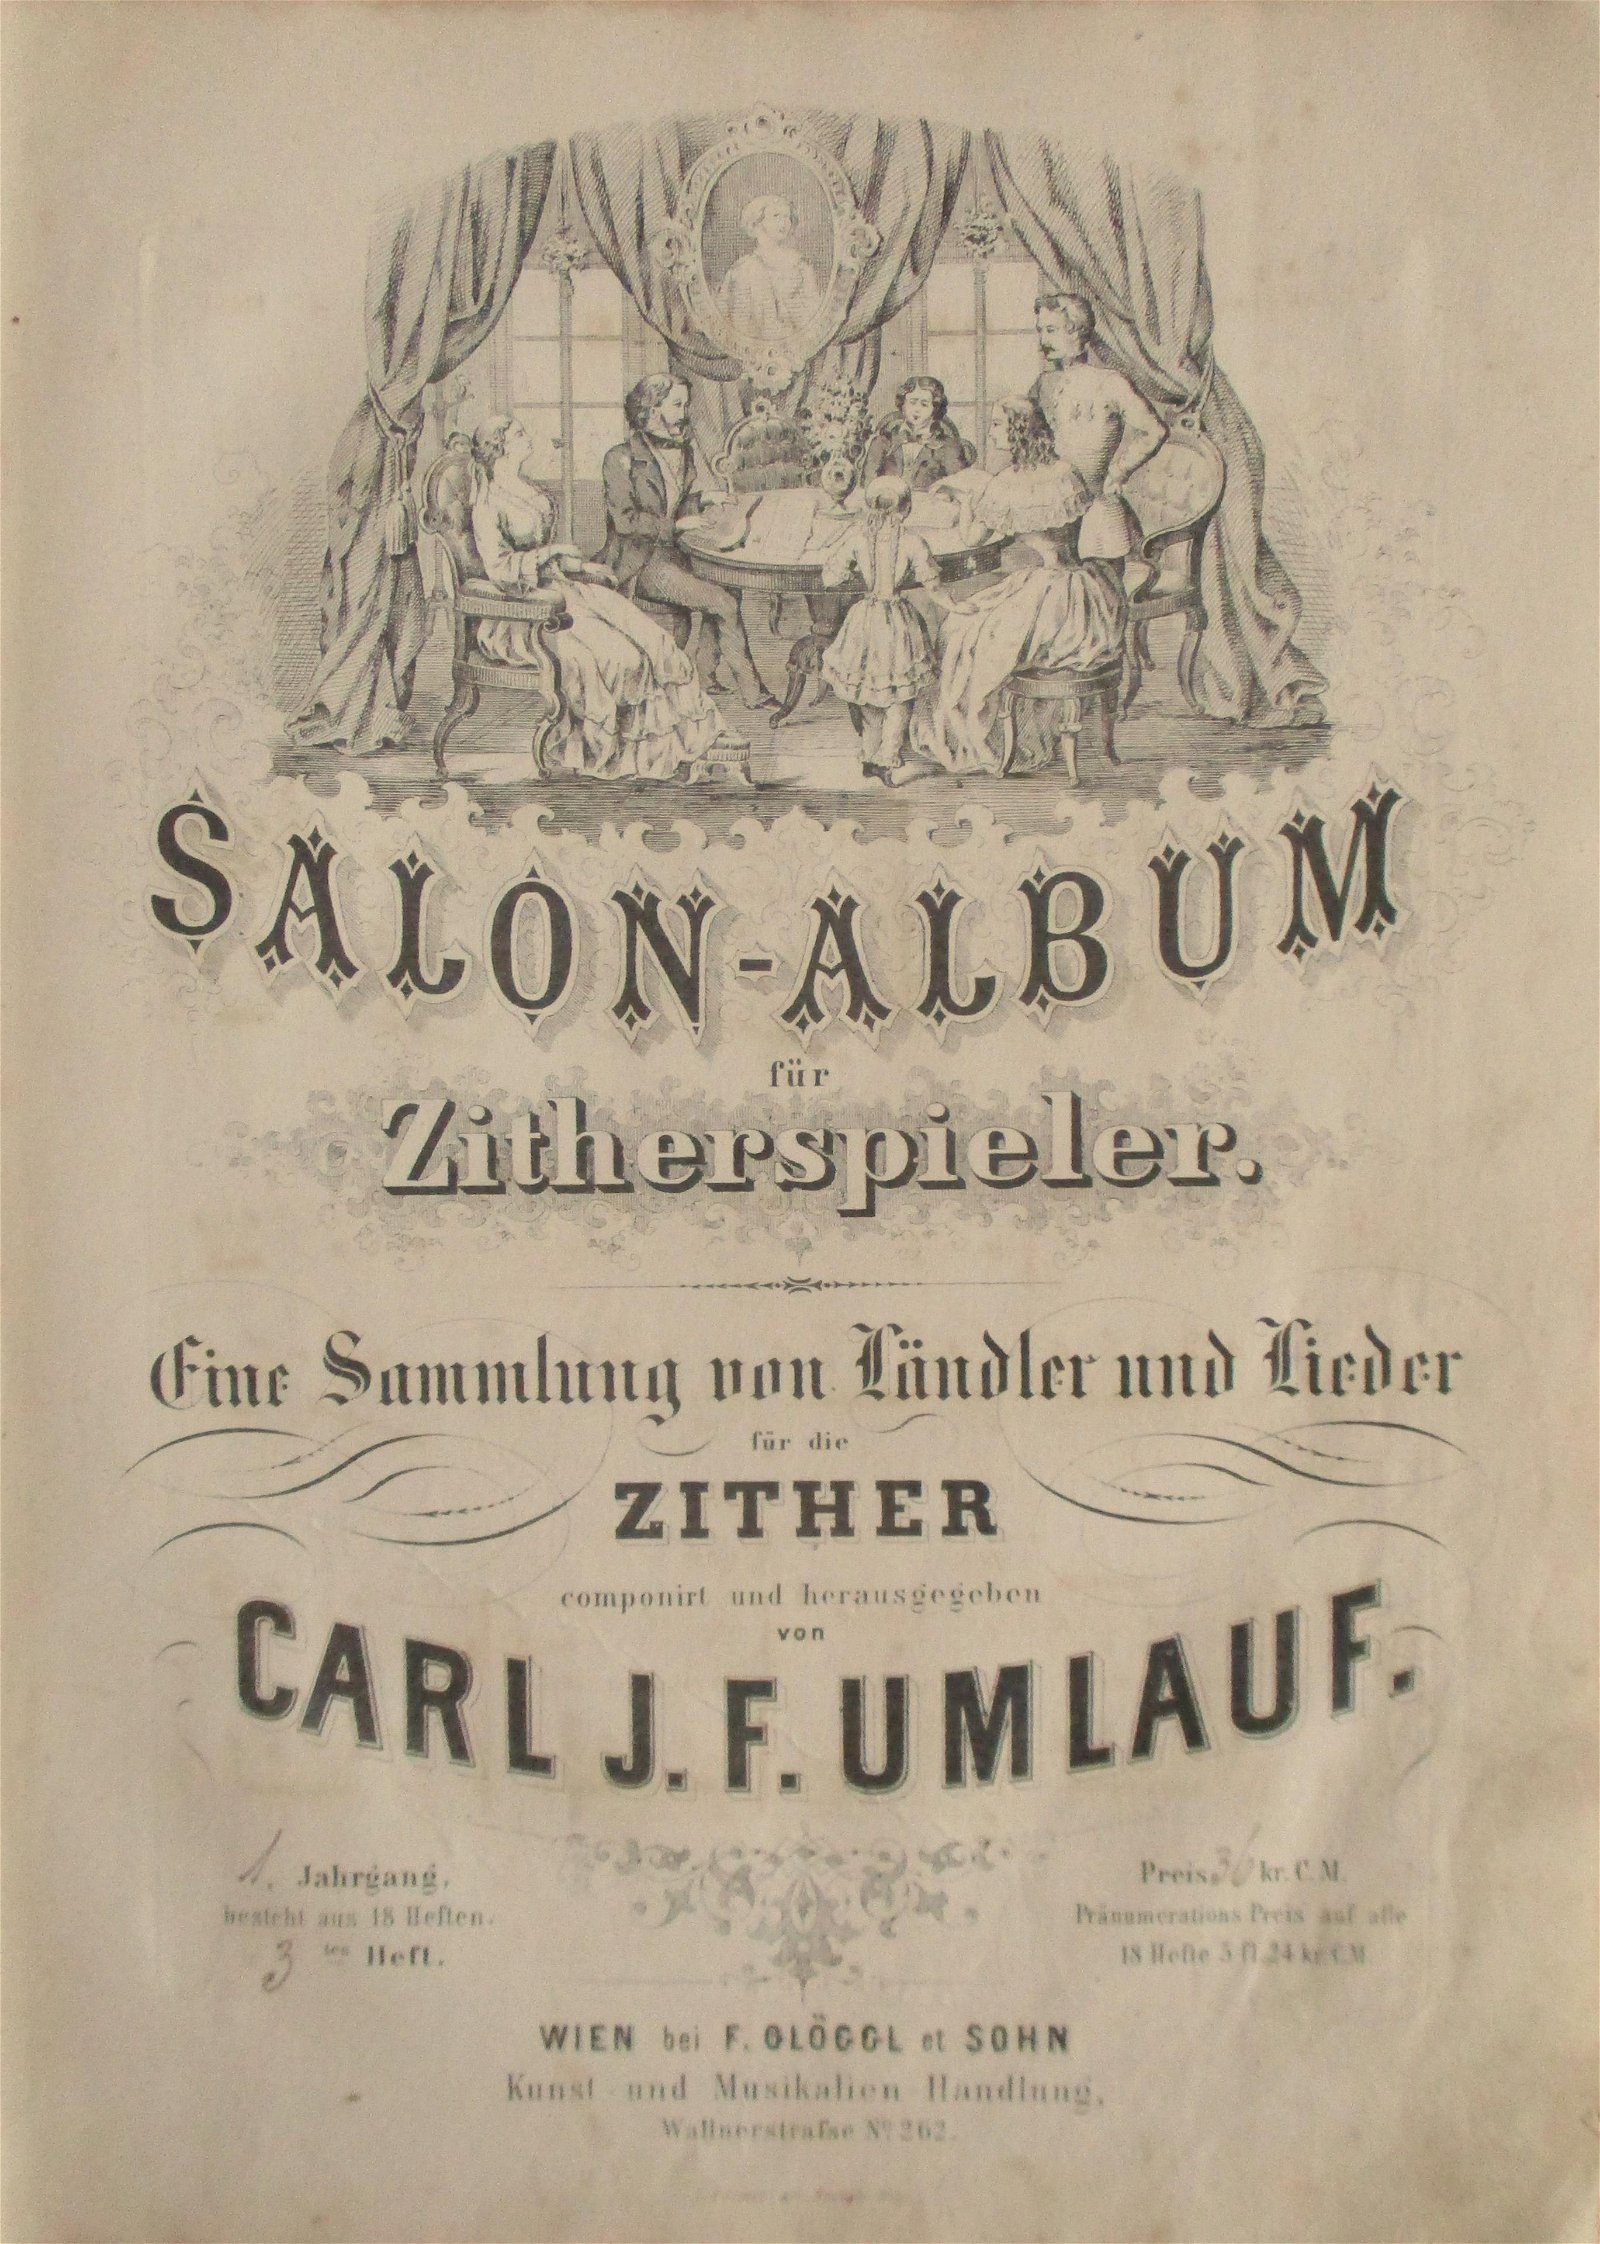 Rare Music for the Zither